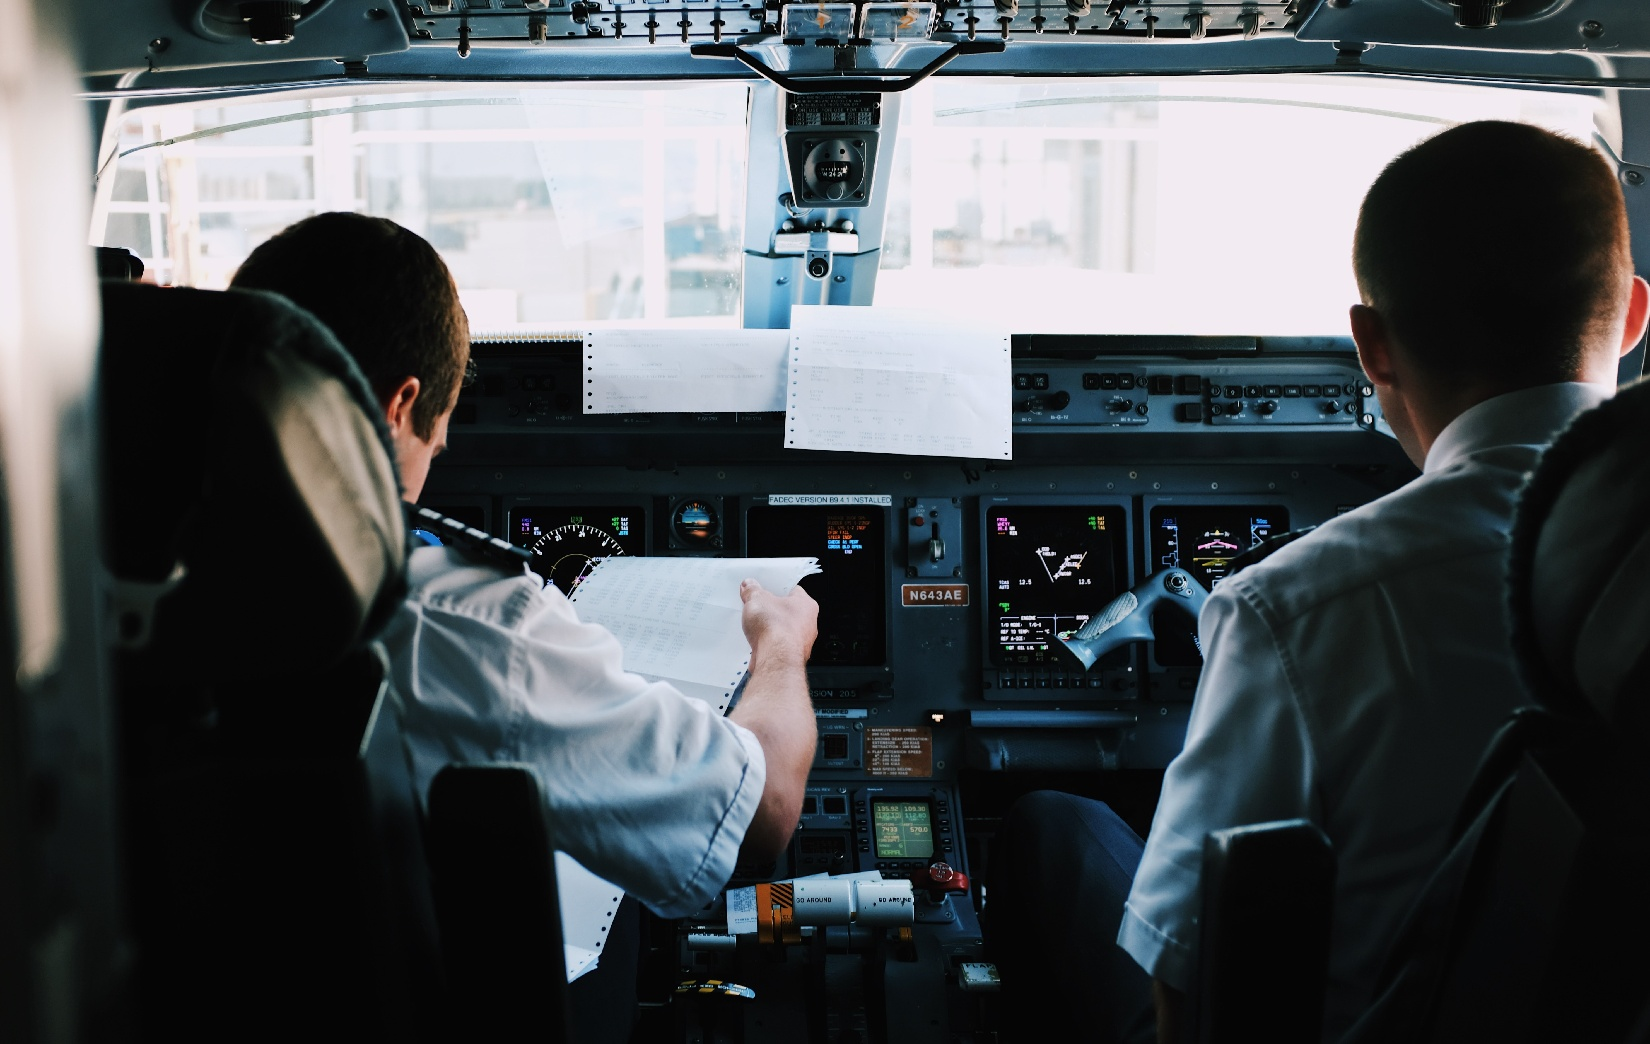 How to Use Your GI Bill for Flight School